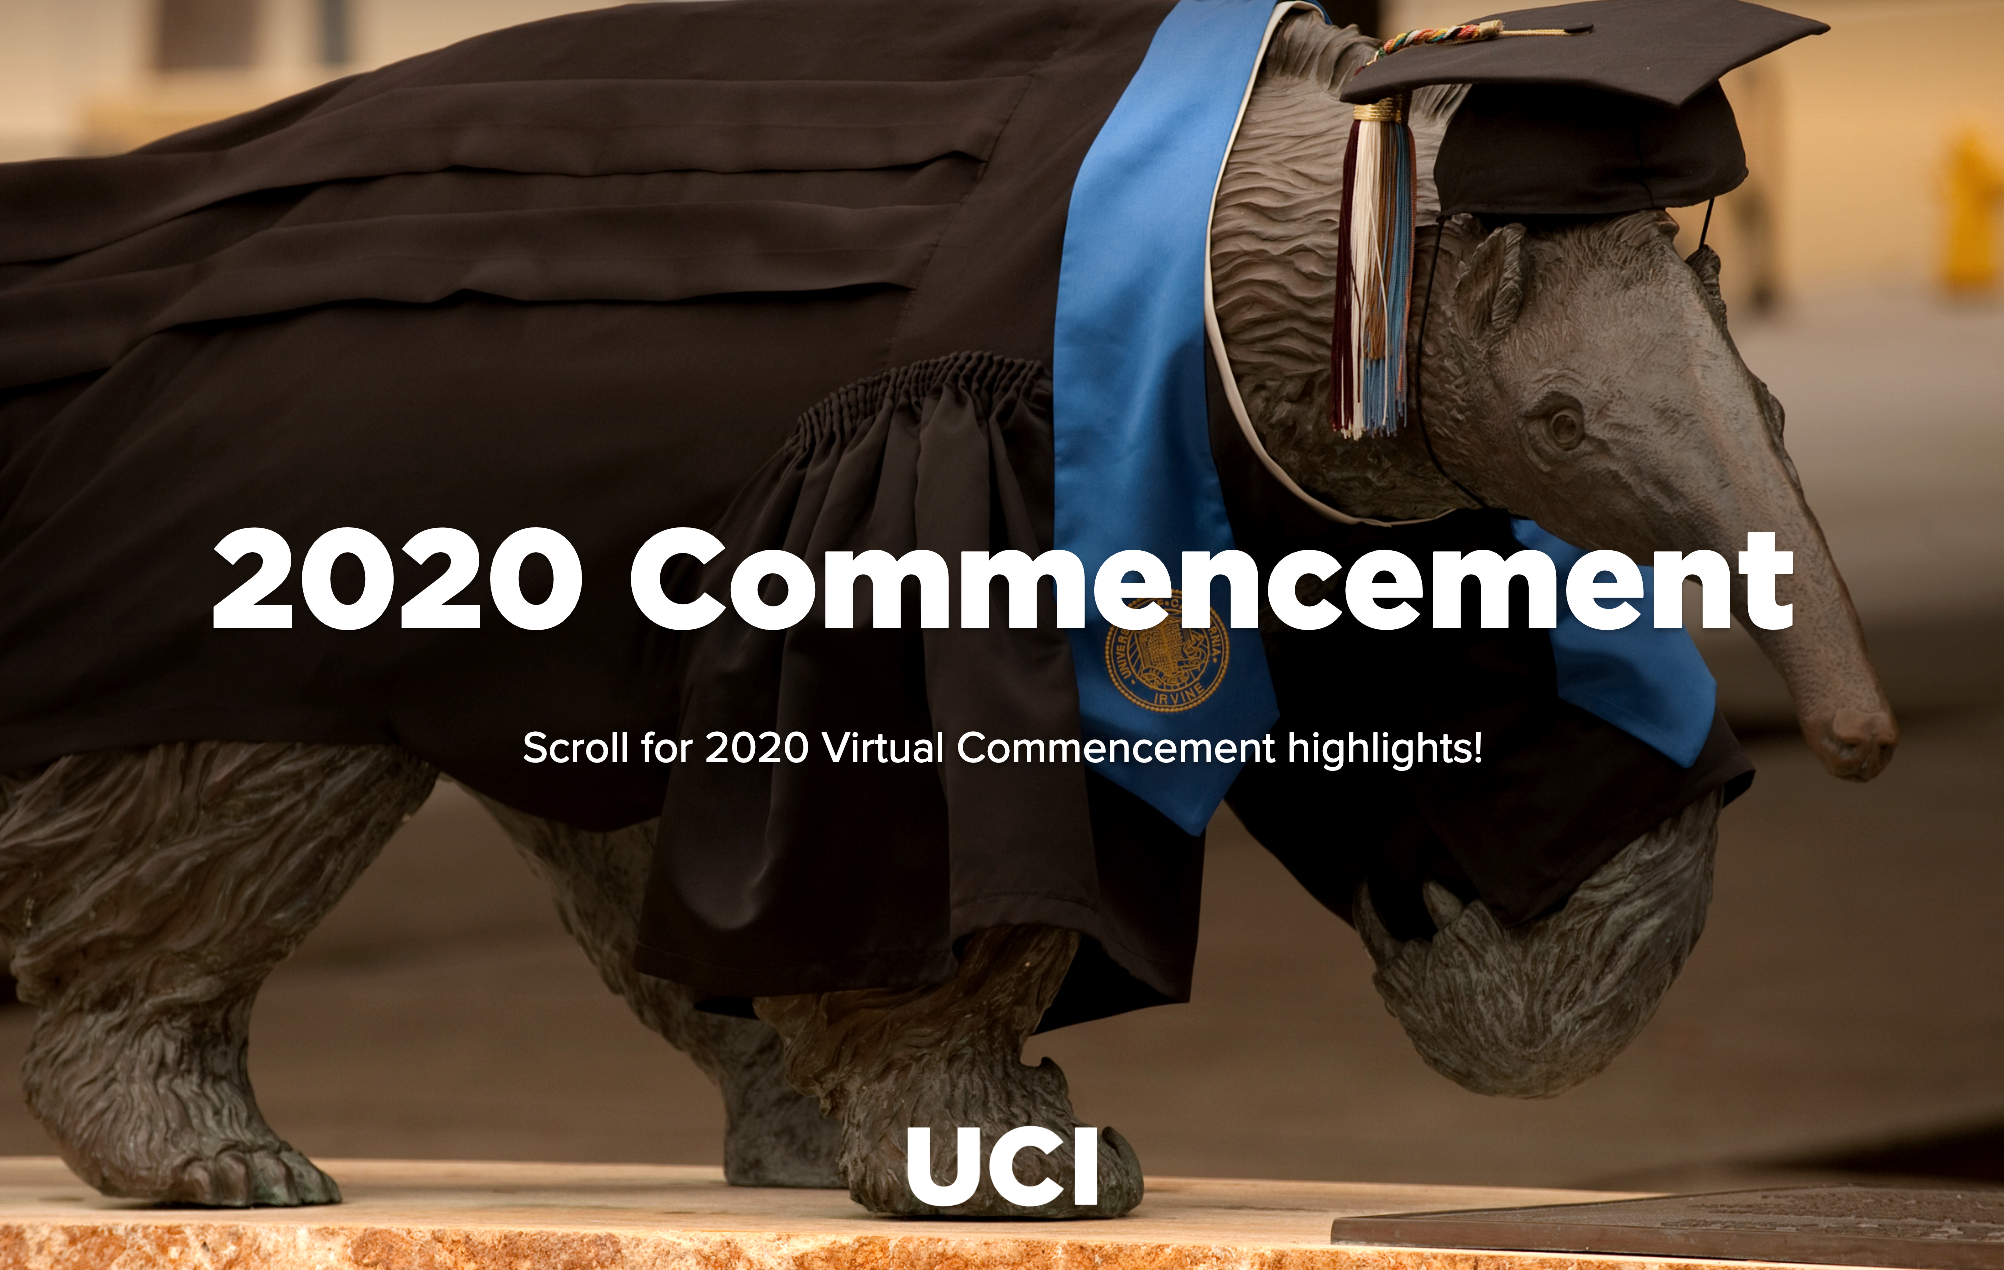 2020 Commencement Highlights